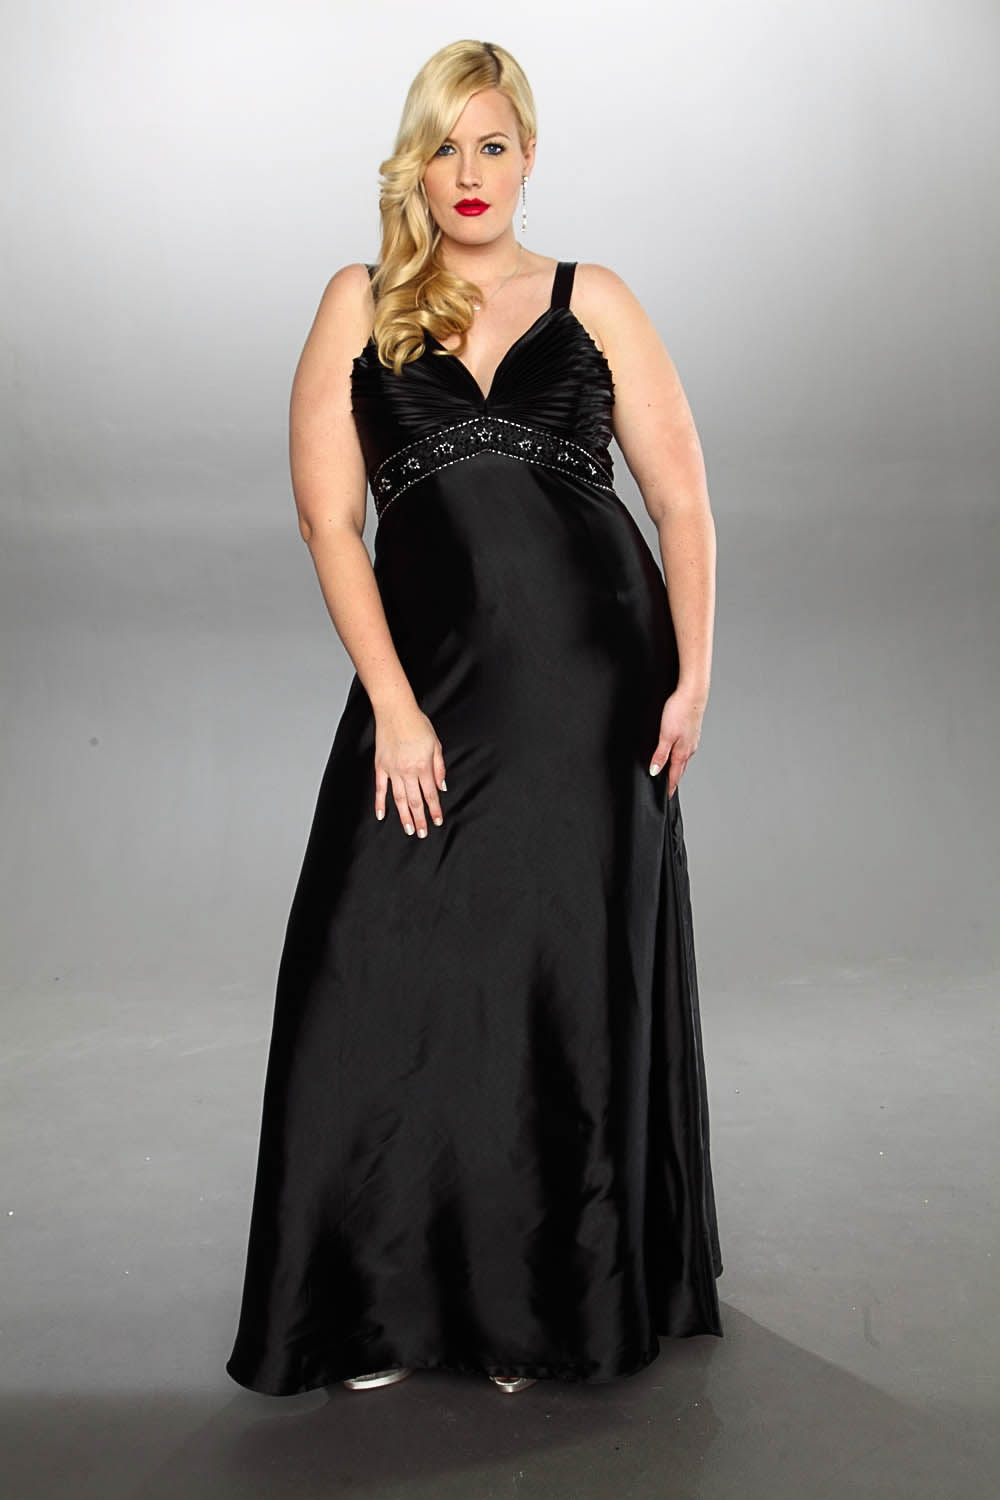 plus size dresses to wear to wedding ceremony